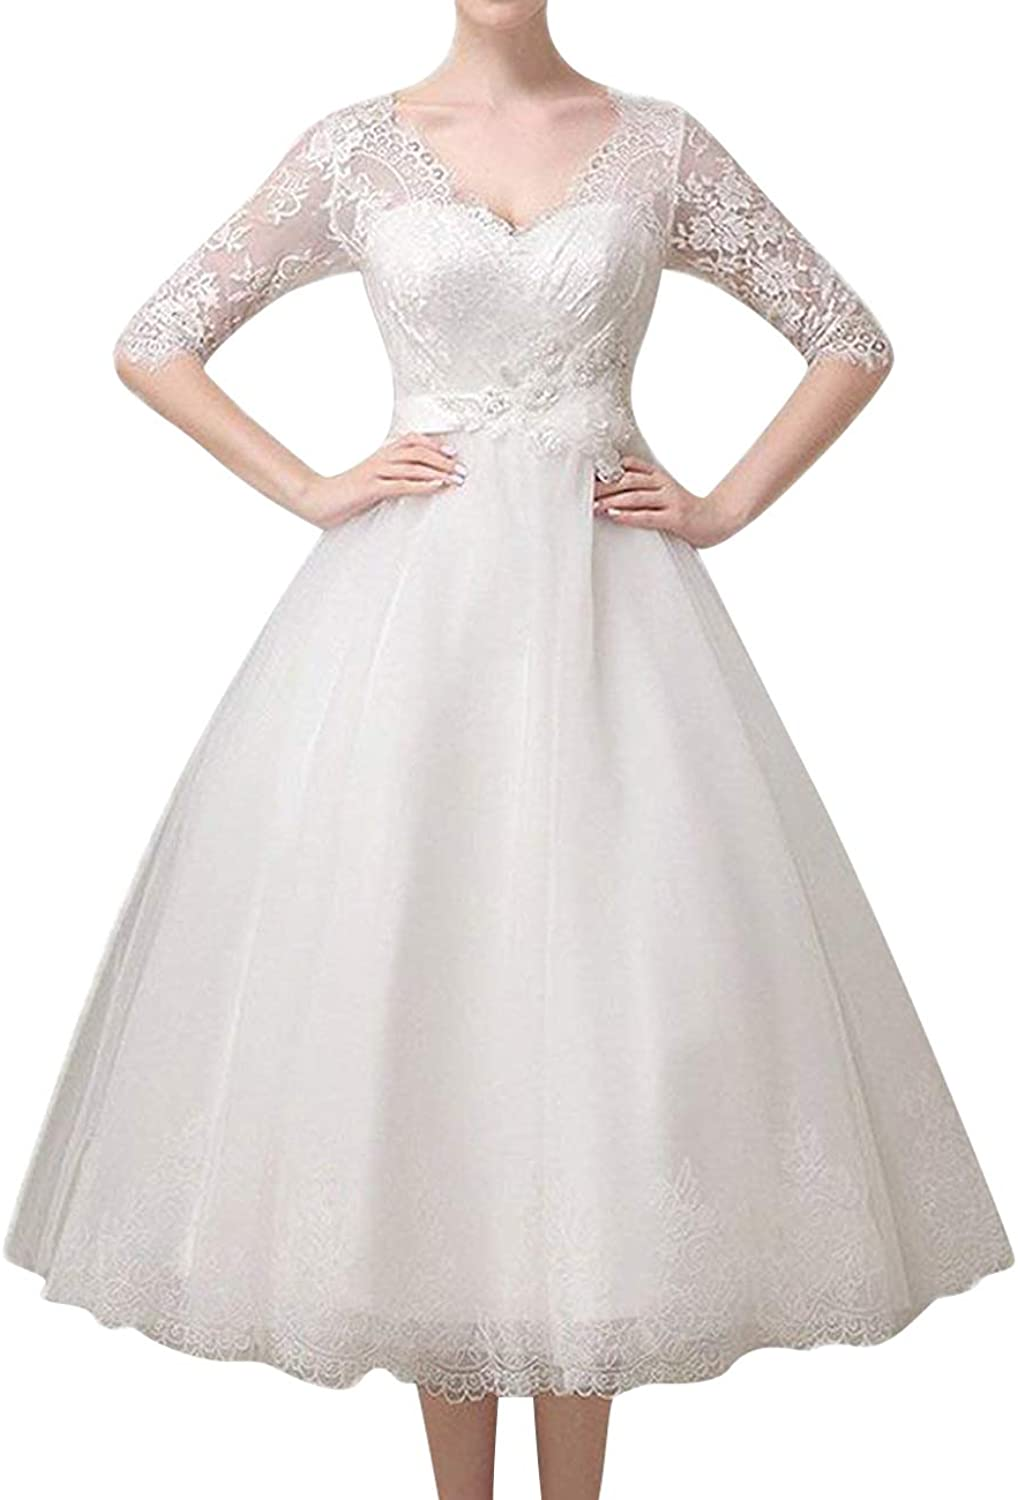 H.S.D Wedding Dress Lace Bridal Dress Wedding Party Gown Tea Length Half Sleeves